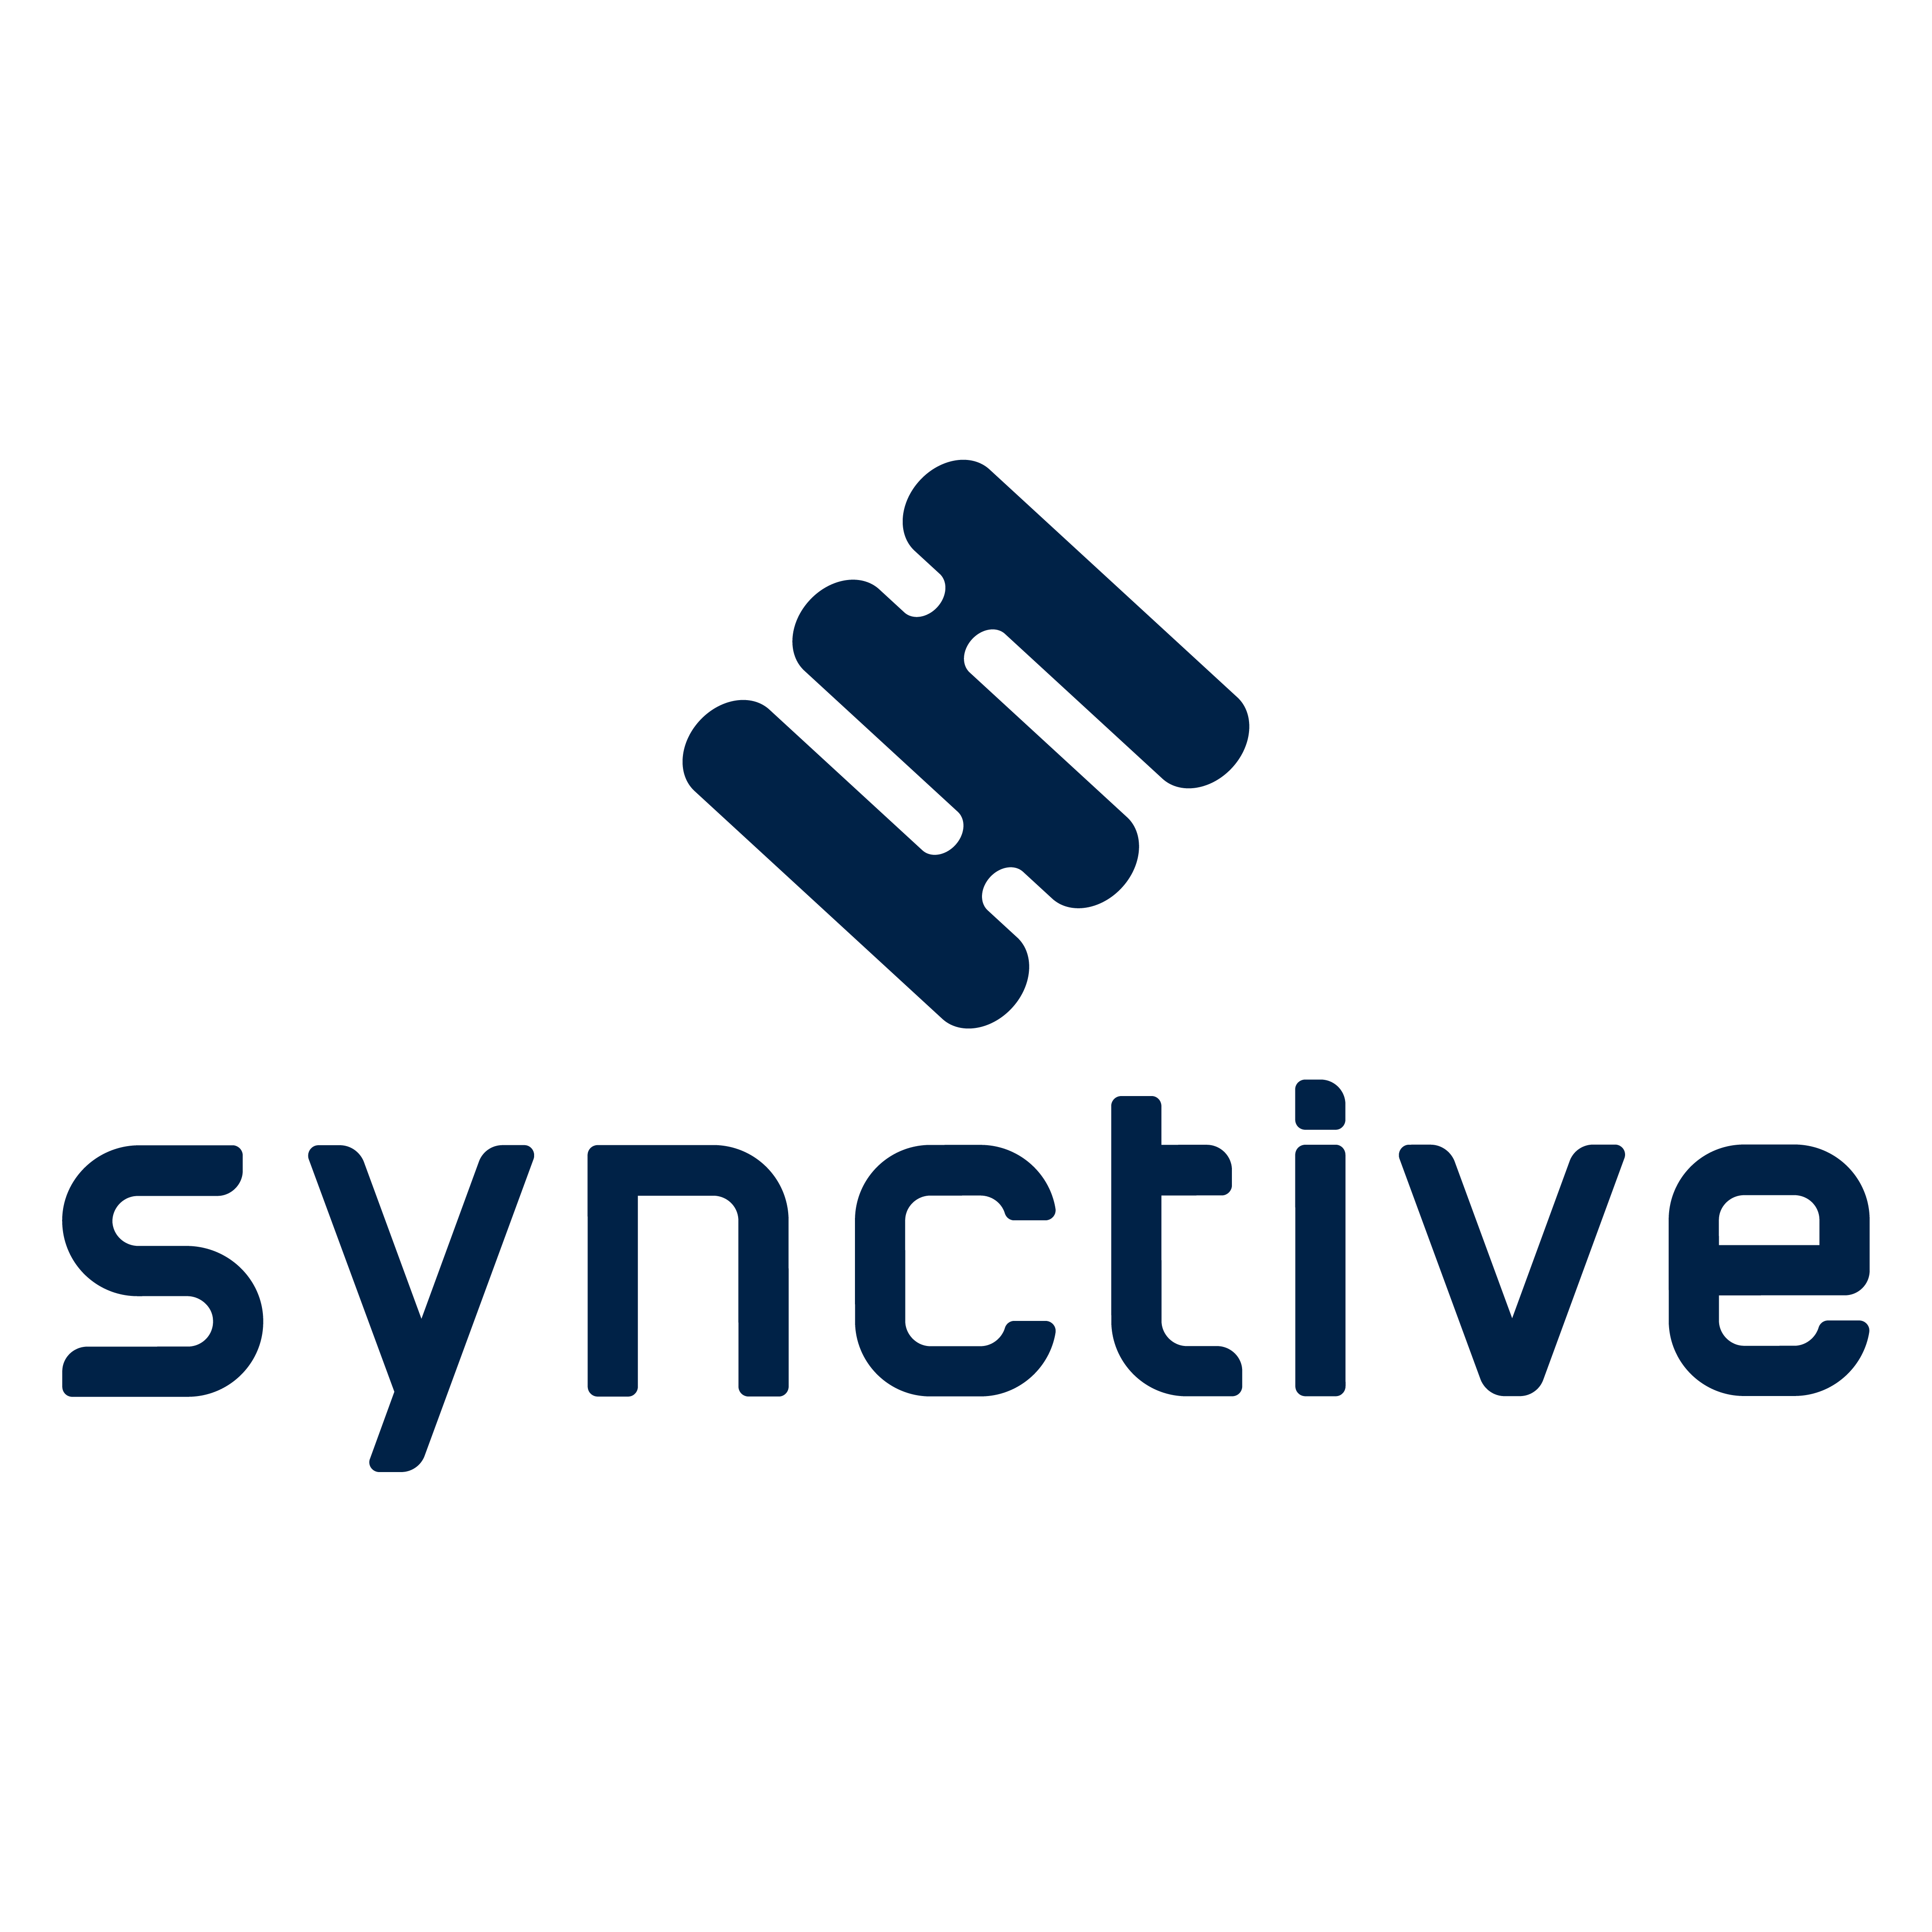 synctive